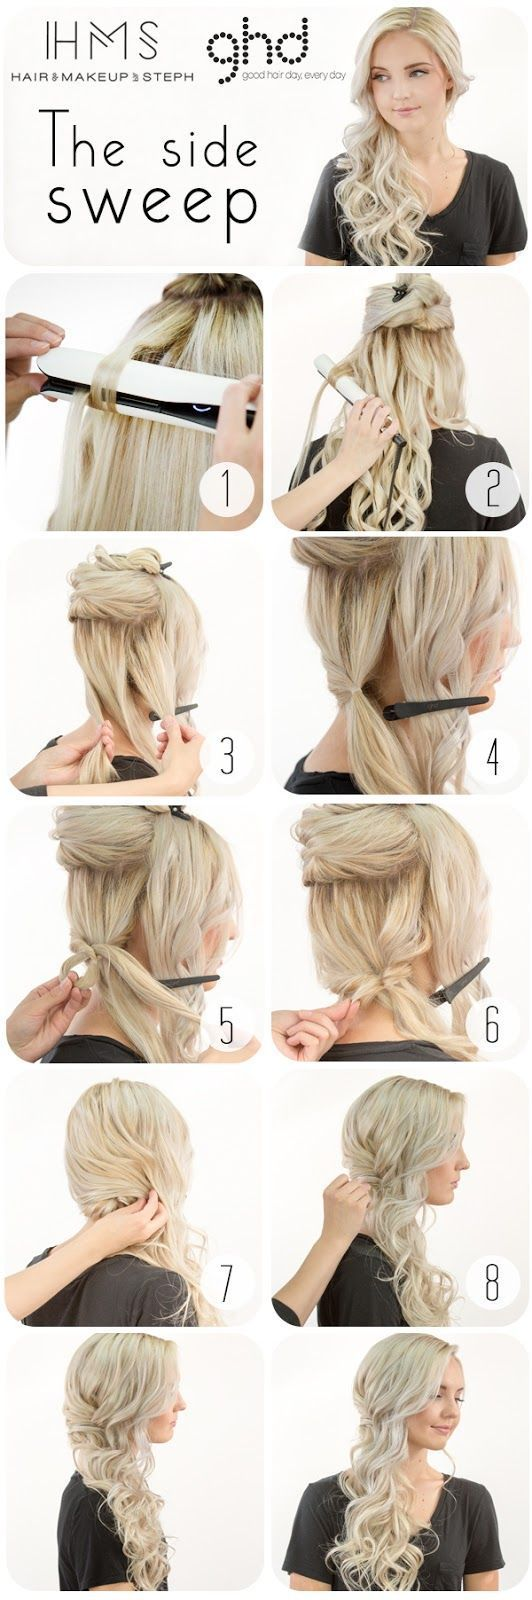 wedding hairstyles to the side best photos - Page 3 of 4 | Weddings ...